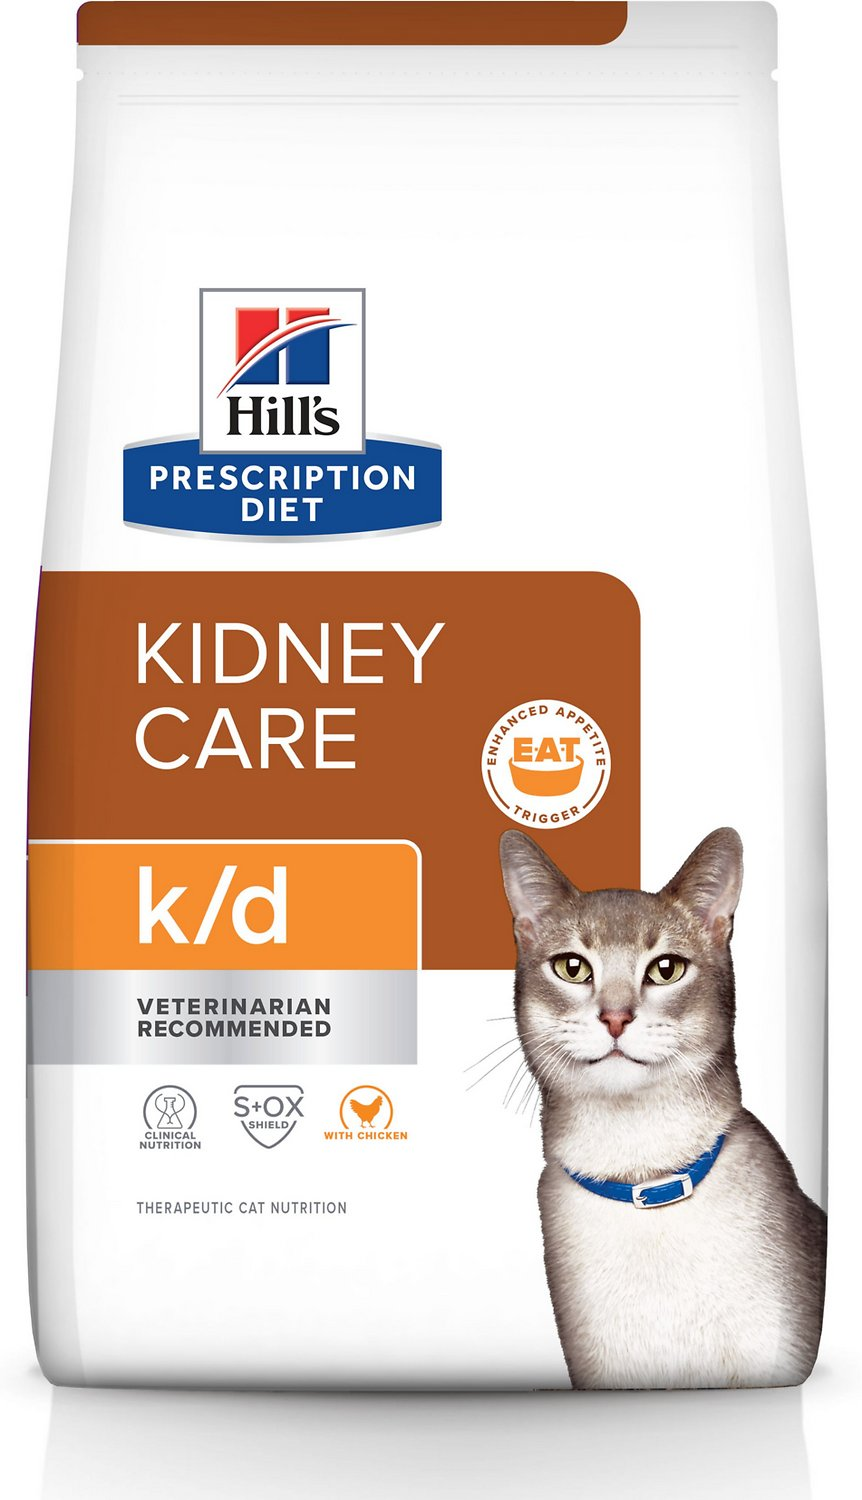 Kidney Care with Chicken Dry Cat Food